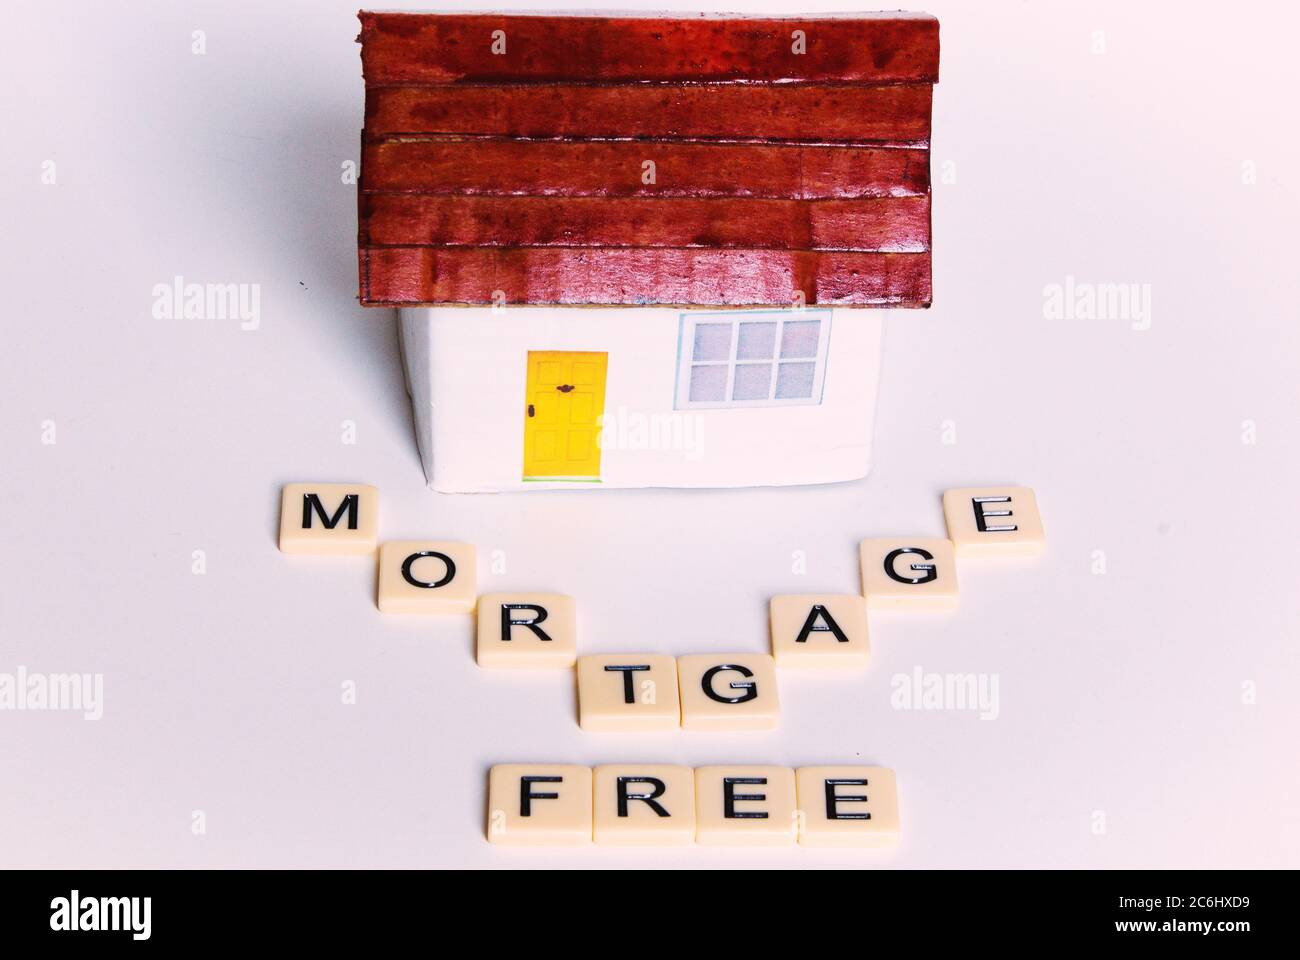 Financial Concept Image Cost Of Covid 19 To Economy And Savings Dream Of Mortgage Free Future Words Mortgage Free Owning Own House No Mortg Stock Photo Alamy